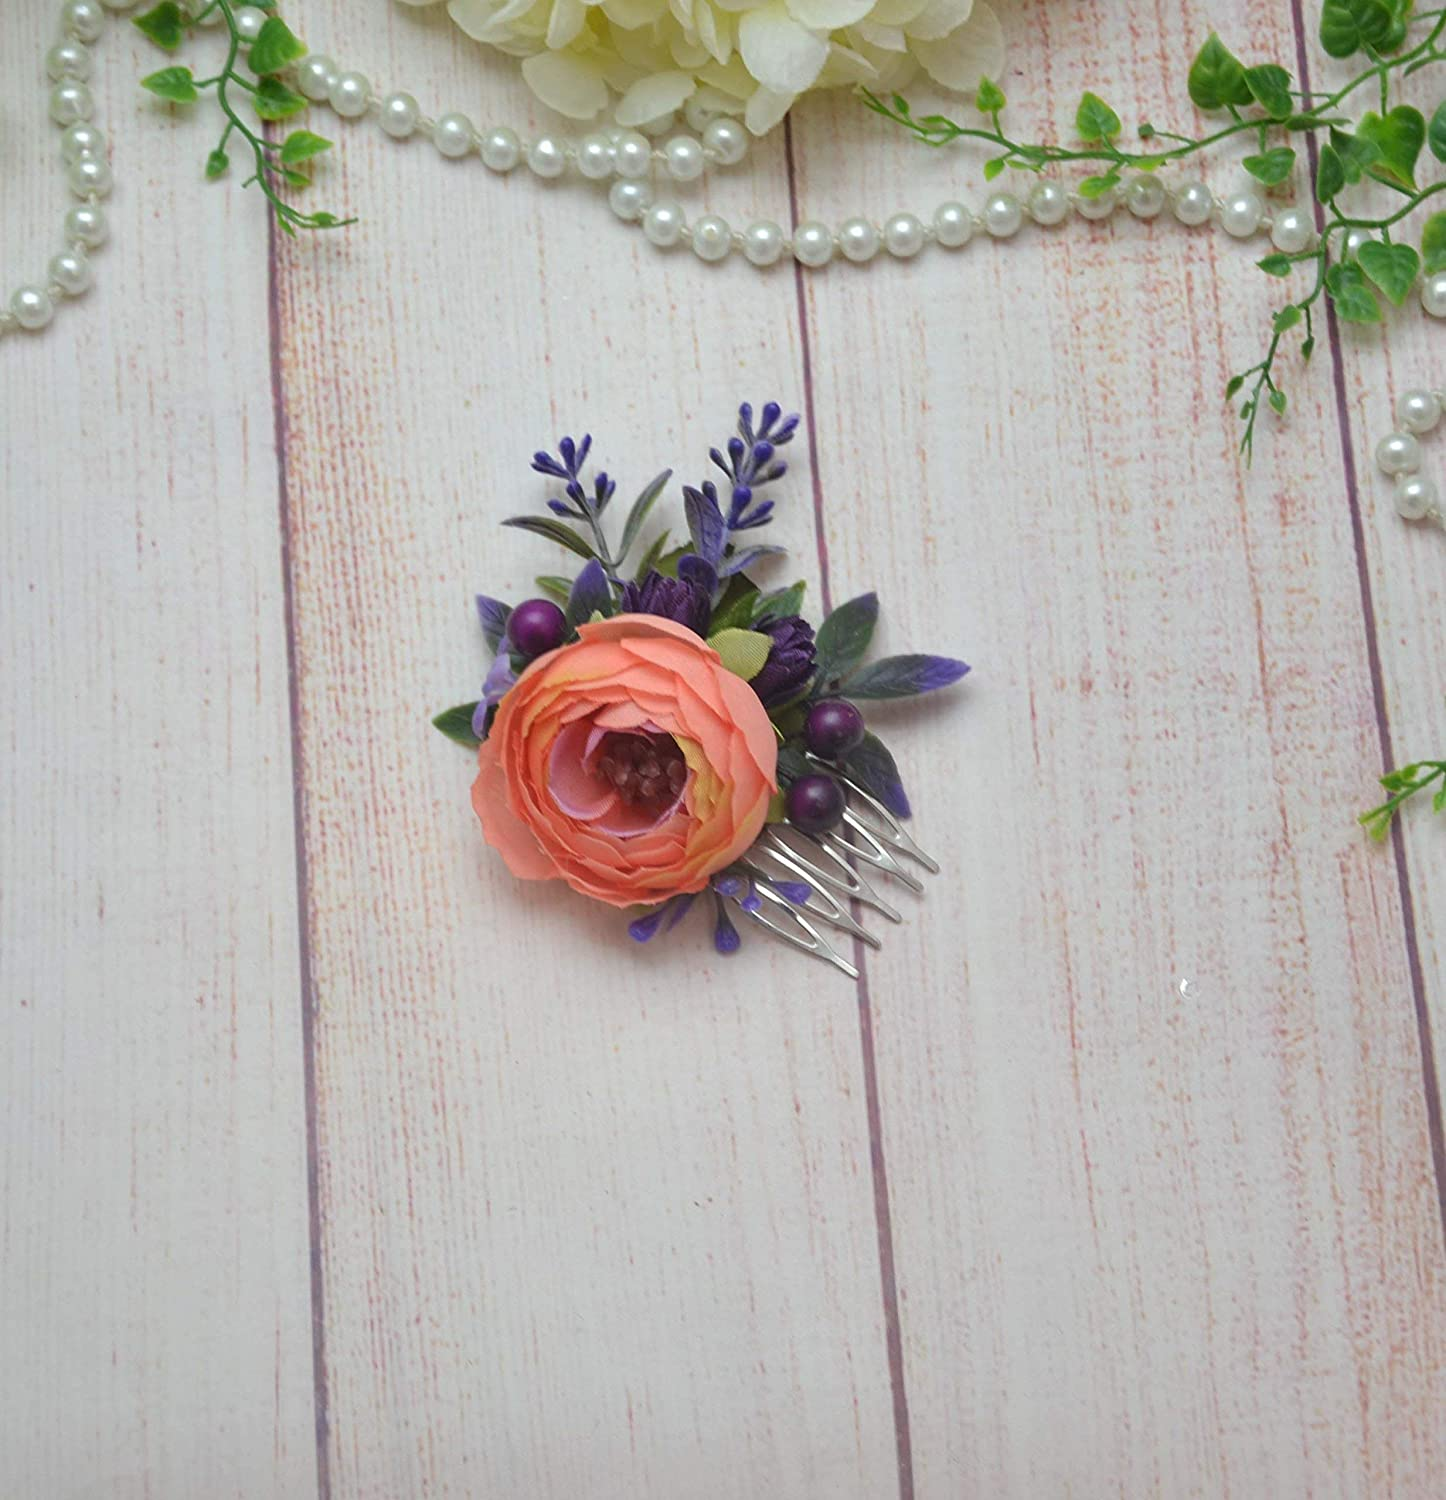 Peach flower comb for women wedding Purple floral comb for bride bridesmaid girl maid of honor